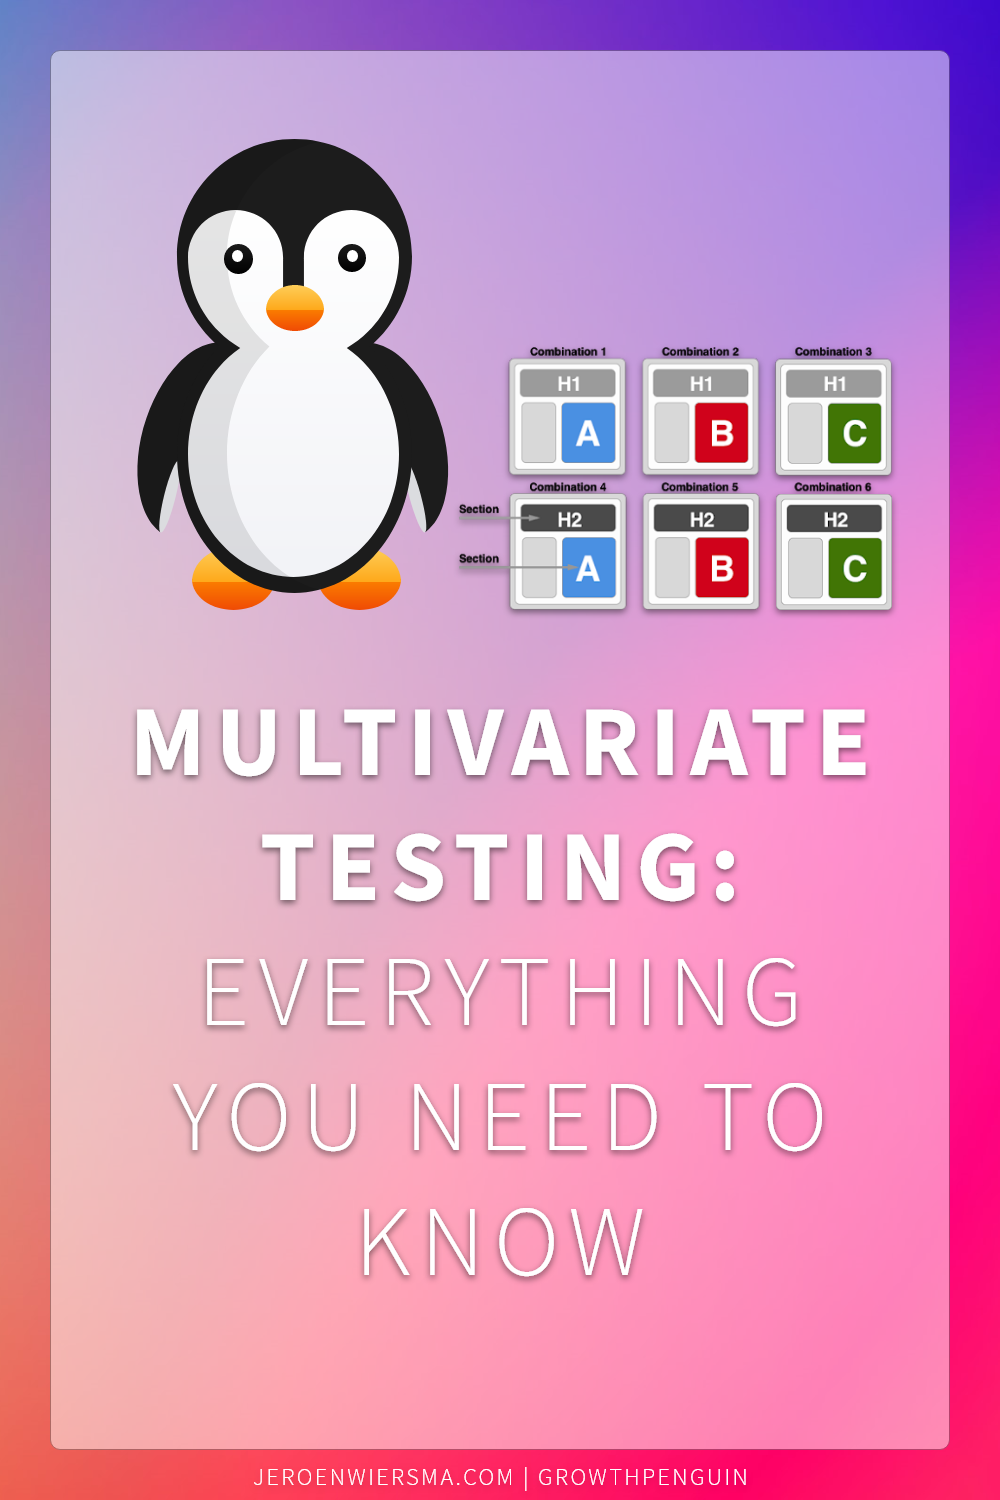 Multivariate testing Everything you need to know